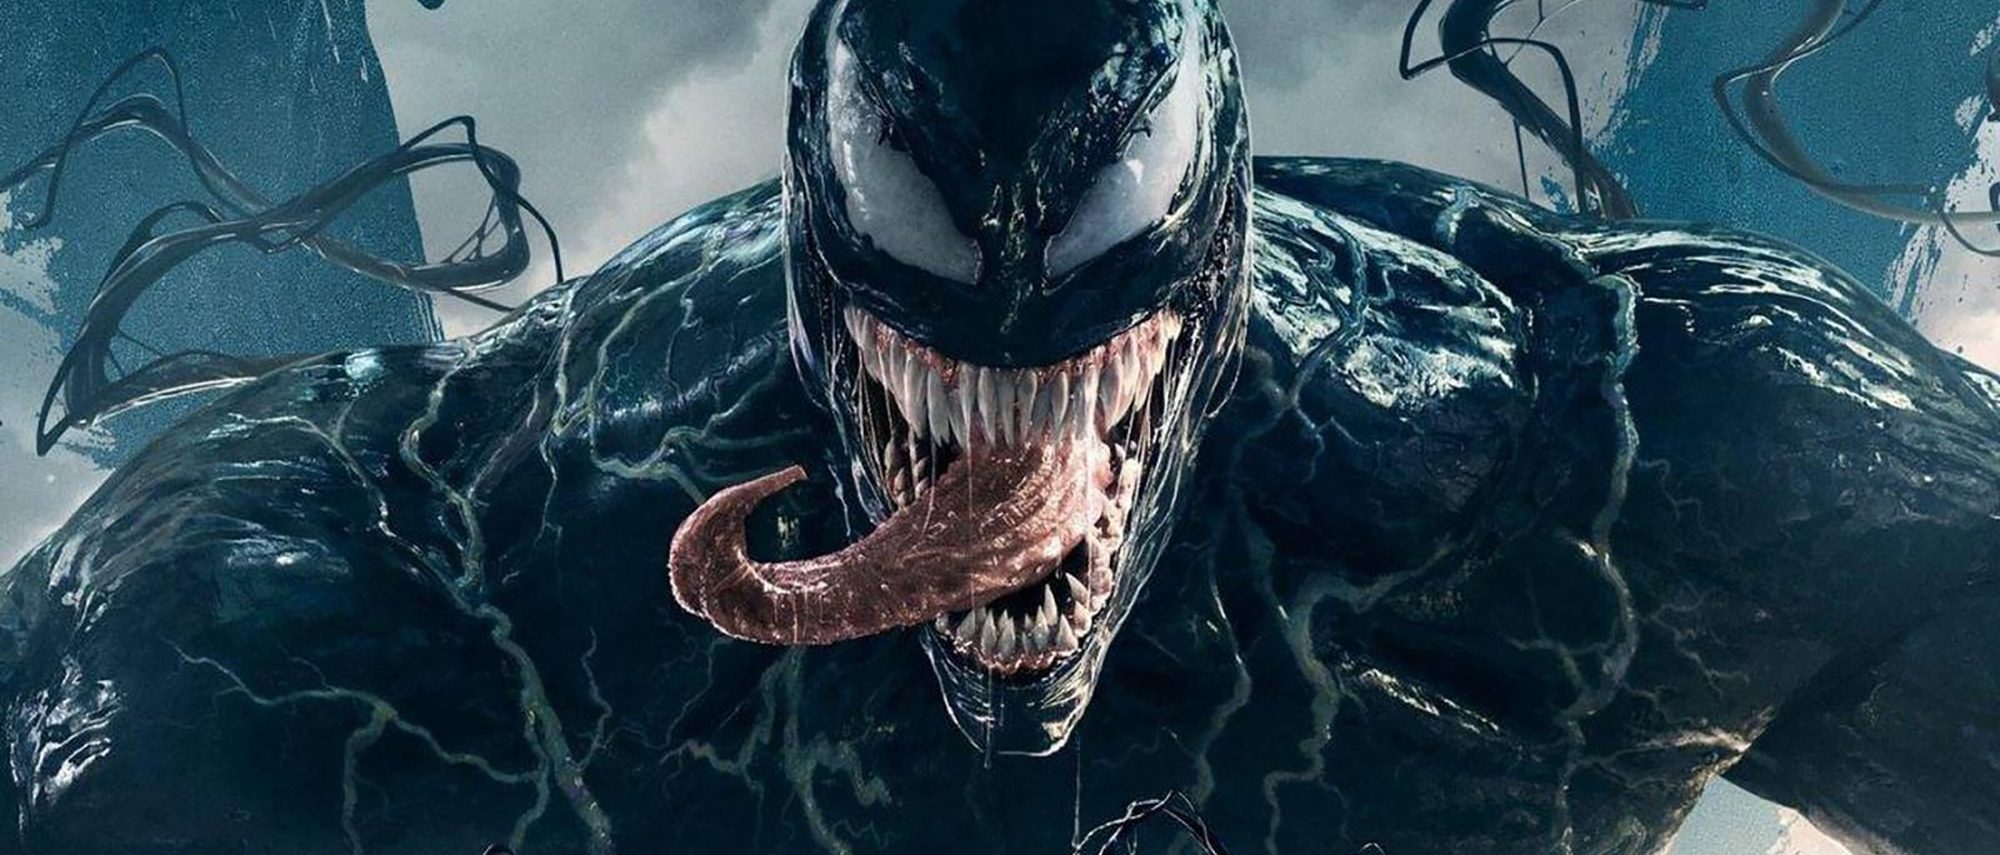 Venom Spider-Man Crossover in the works?